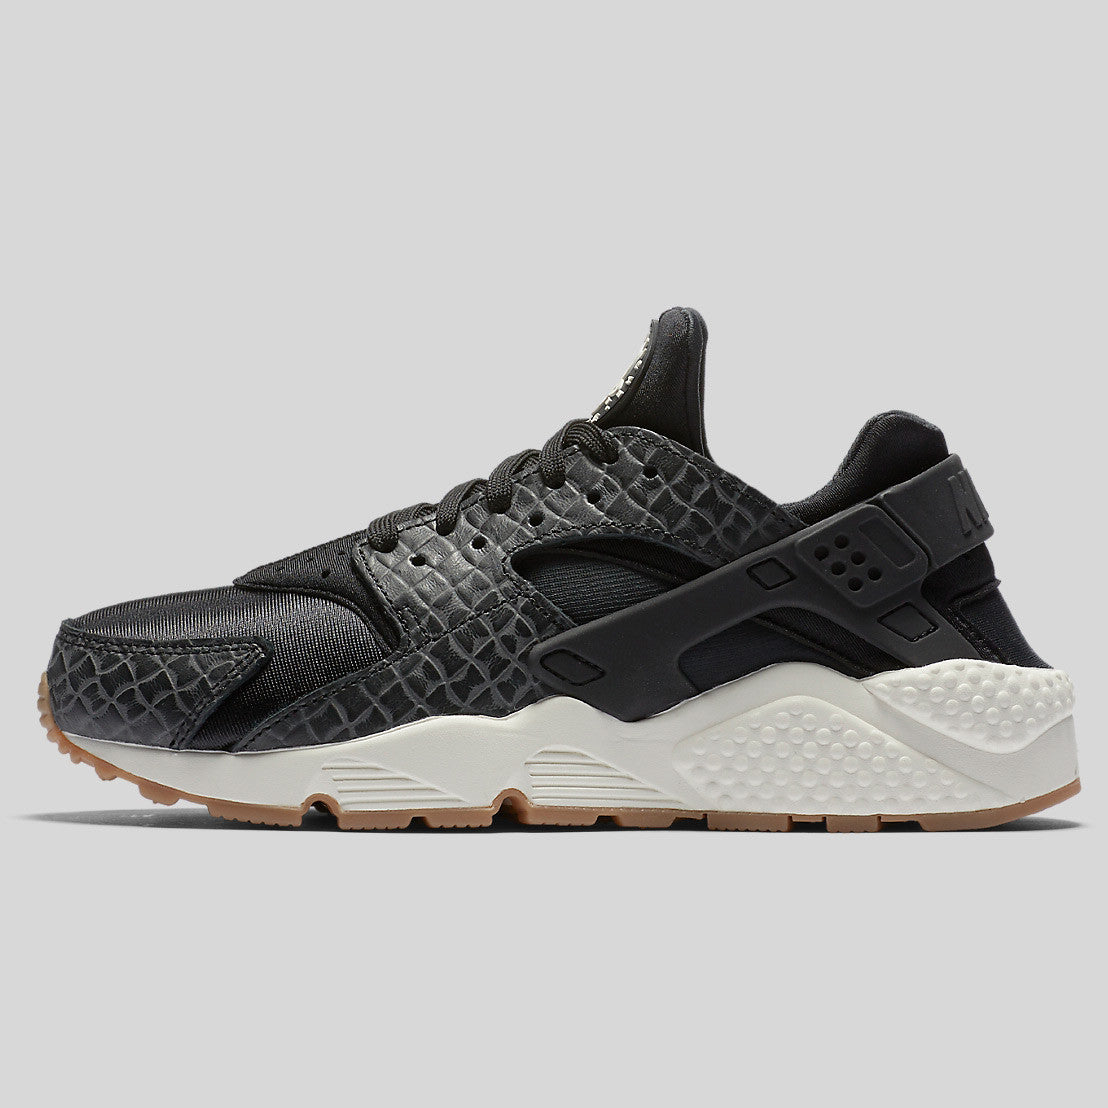 official photos fd3f3 a2ac5 Nike Wmns Air Huarache Run PRM Black Sail Gum Med Brown (683818-011)